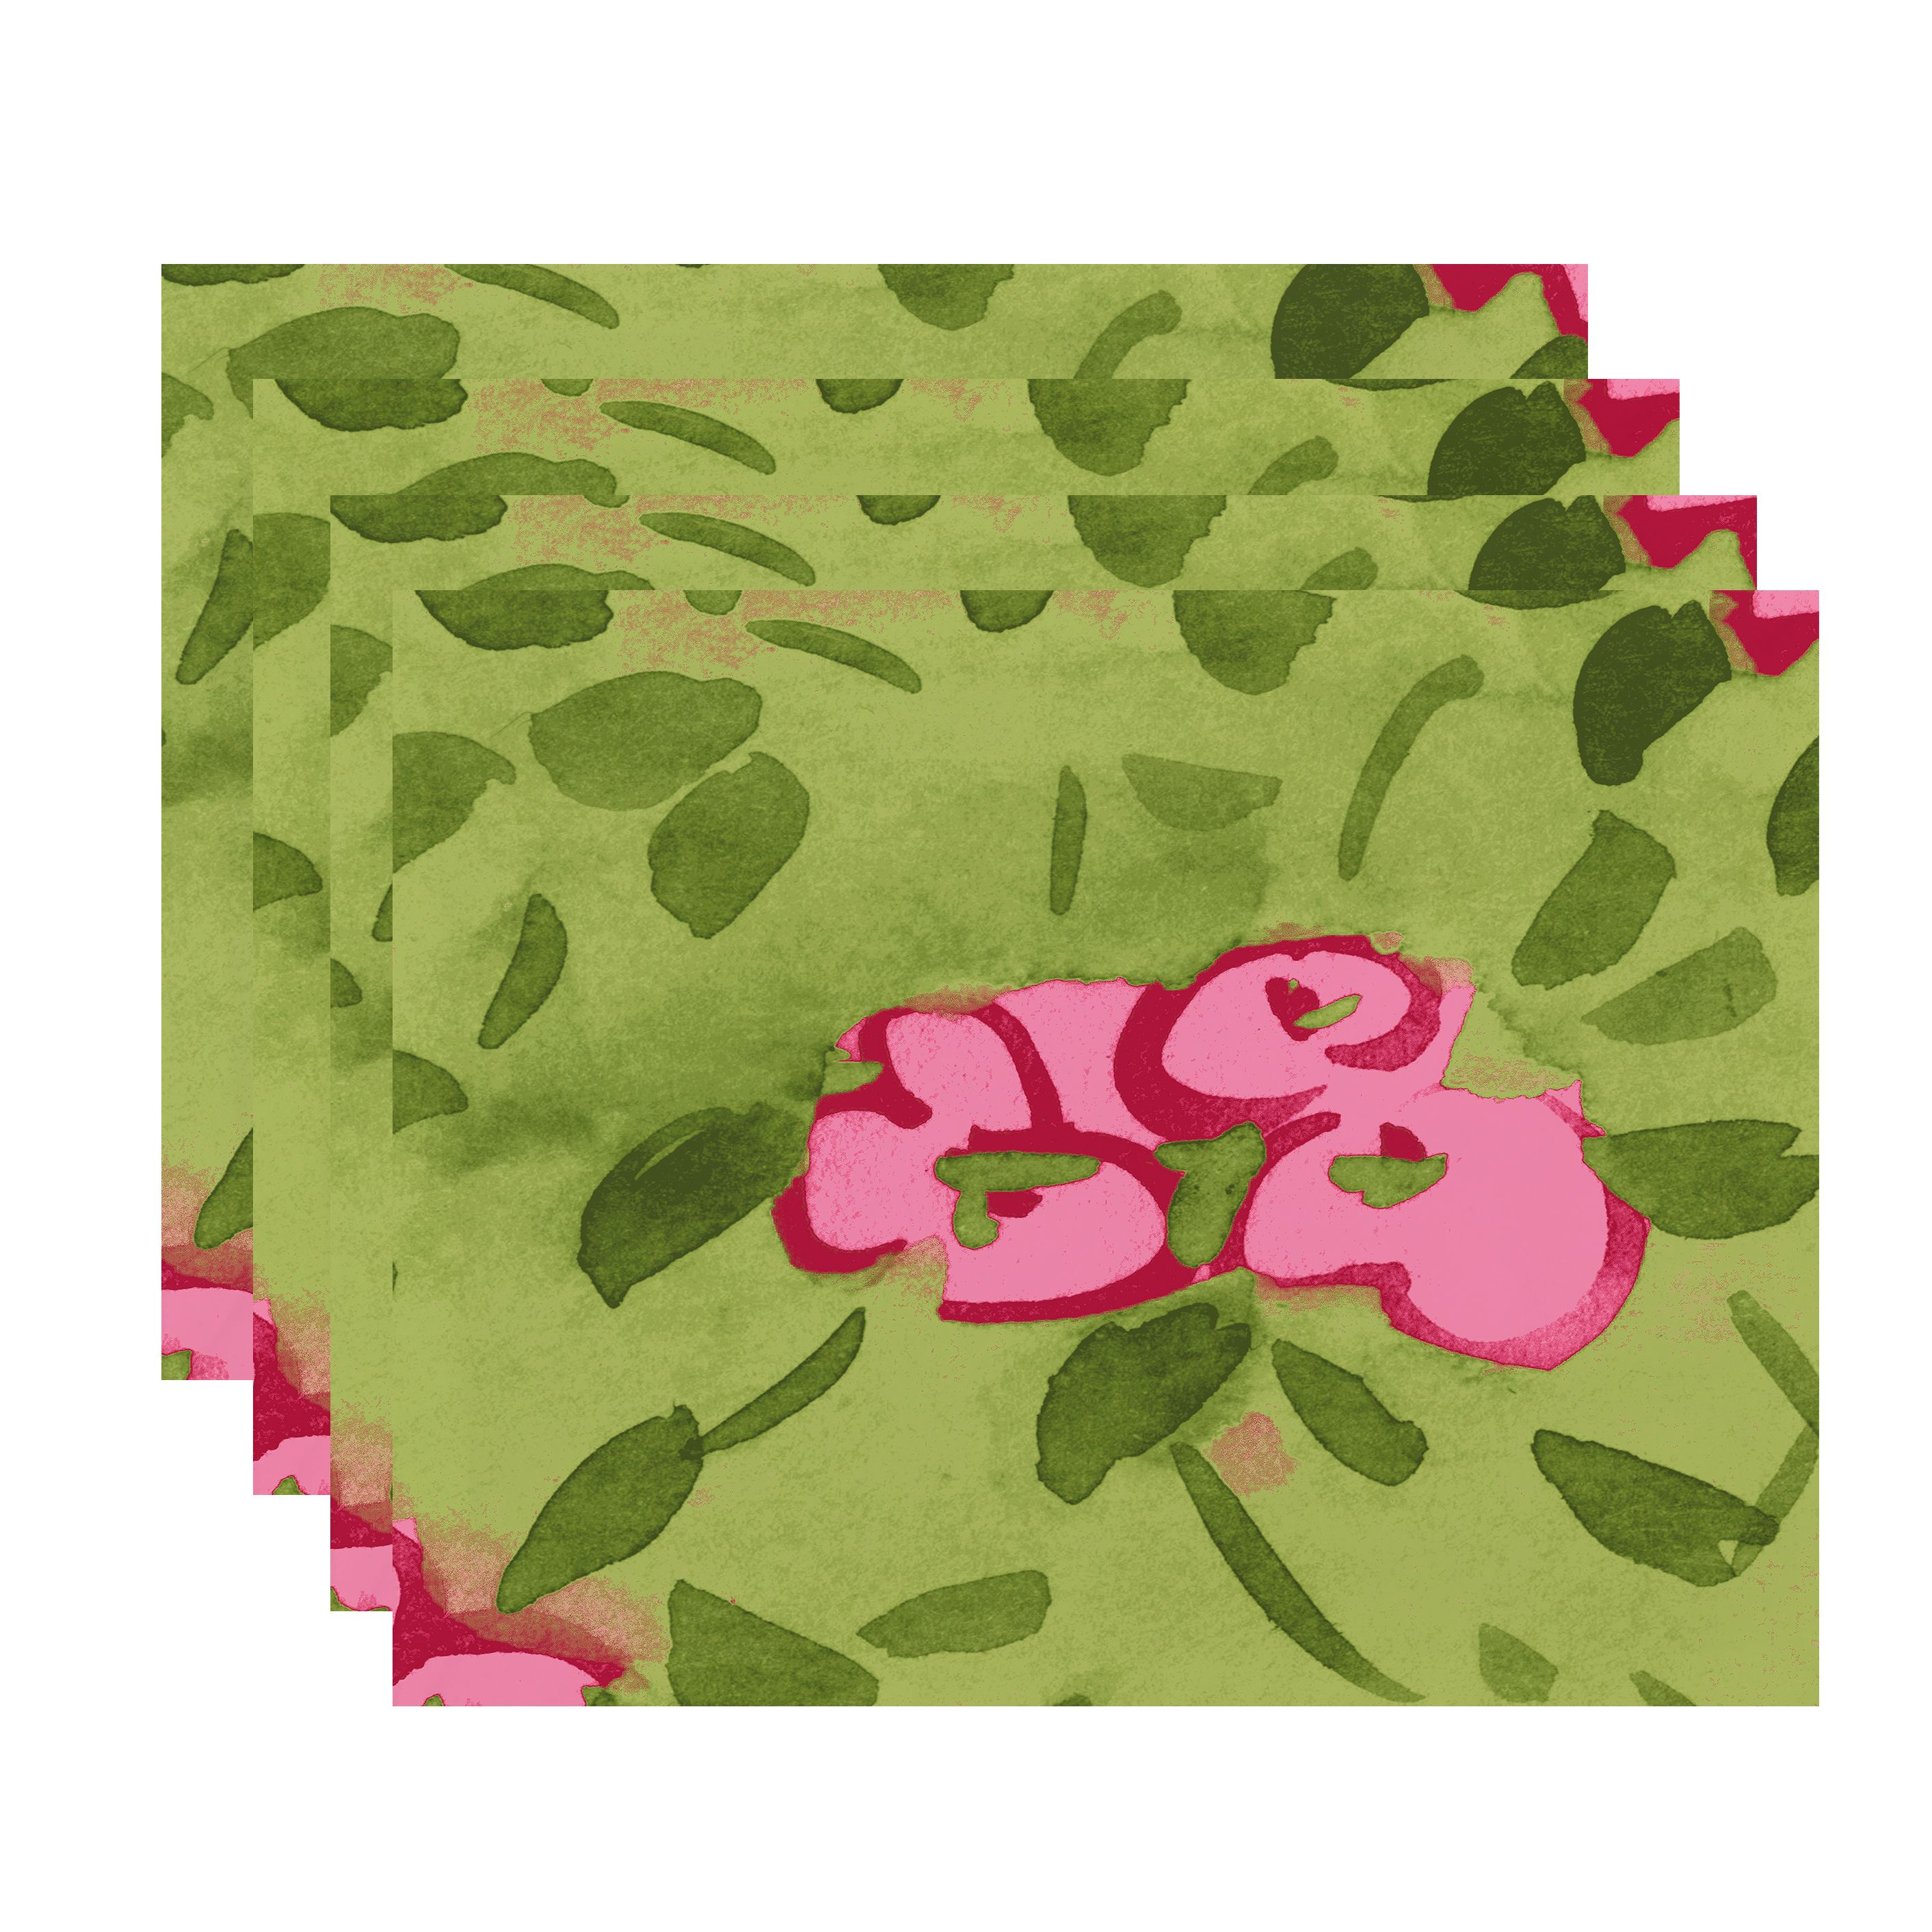 Simply Daisy's Forget Me Not 18x14 inch Pink Floral Print Placemat (Set of Four)